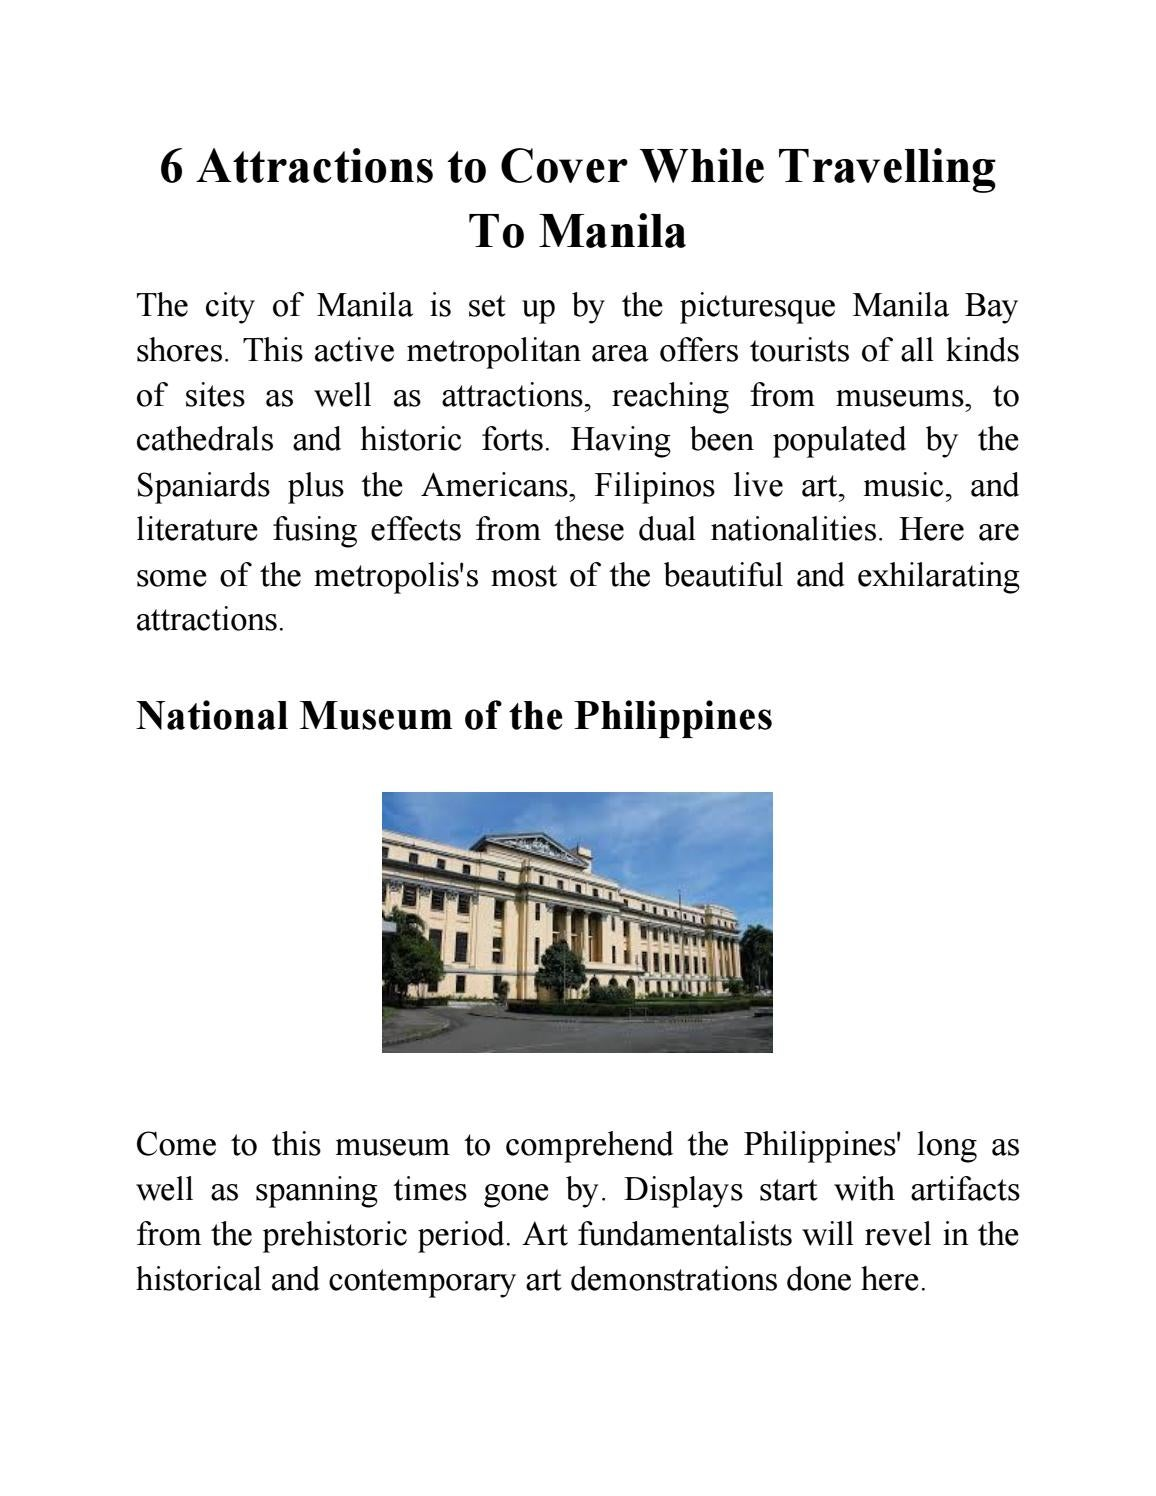 6 Attractions to Cover While Travelling To Manila by Robert Brendon